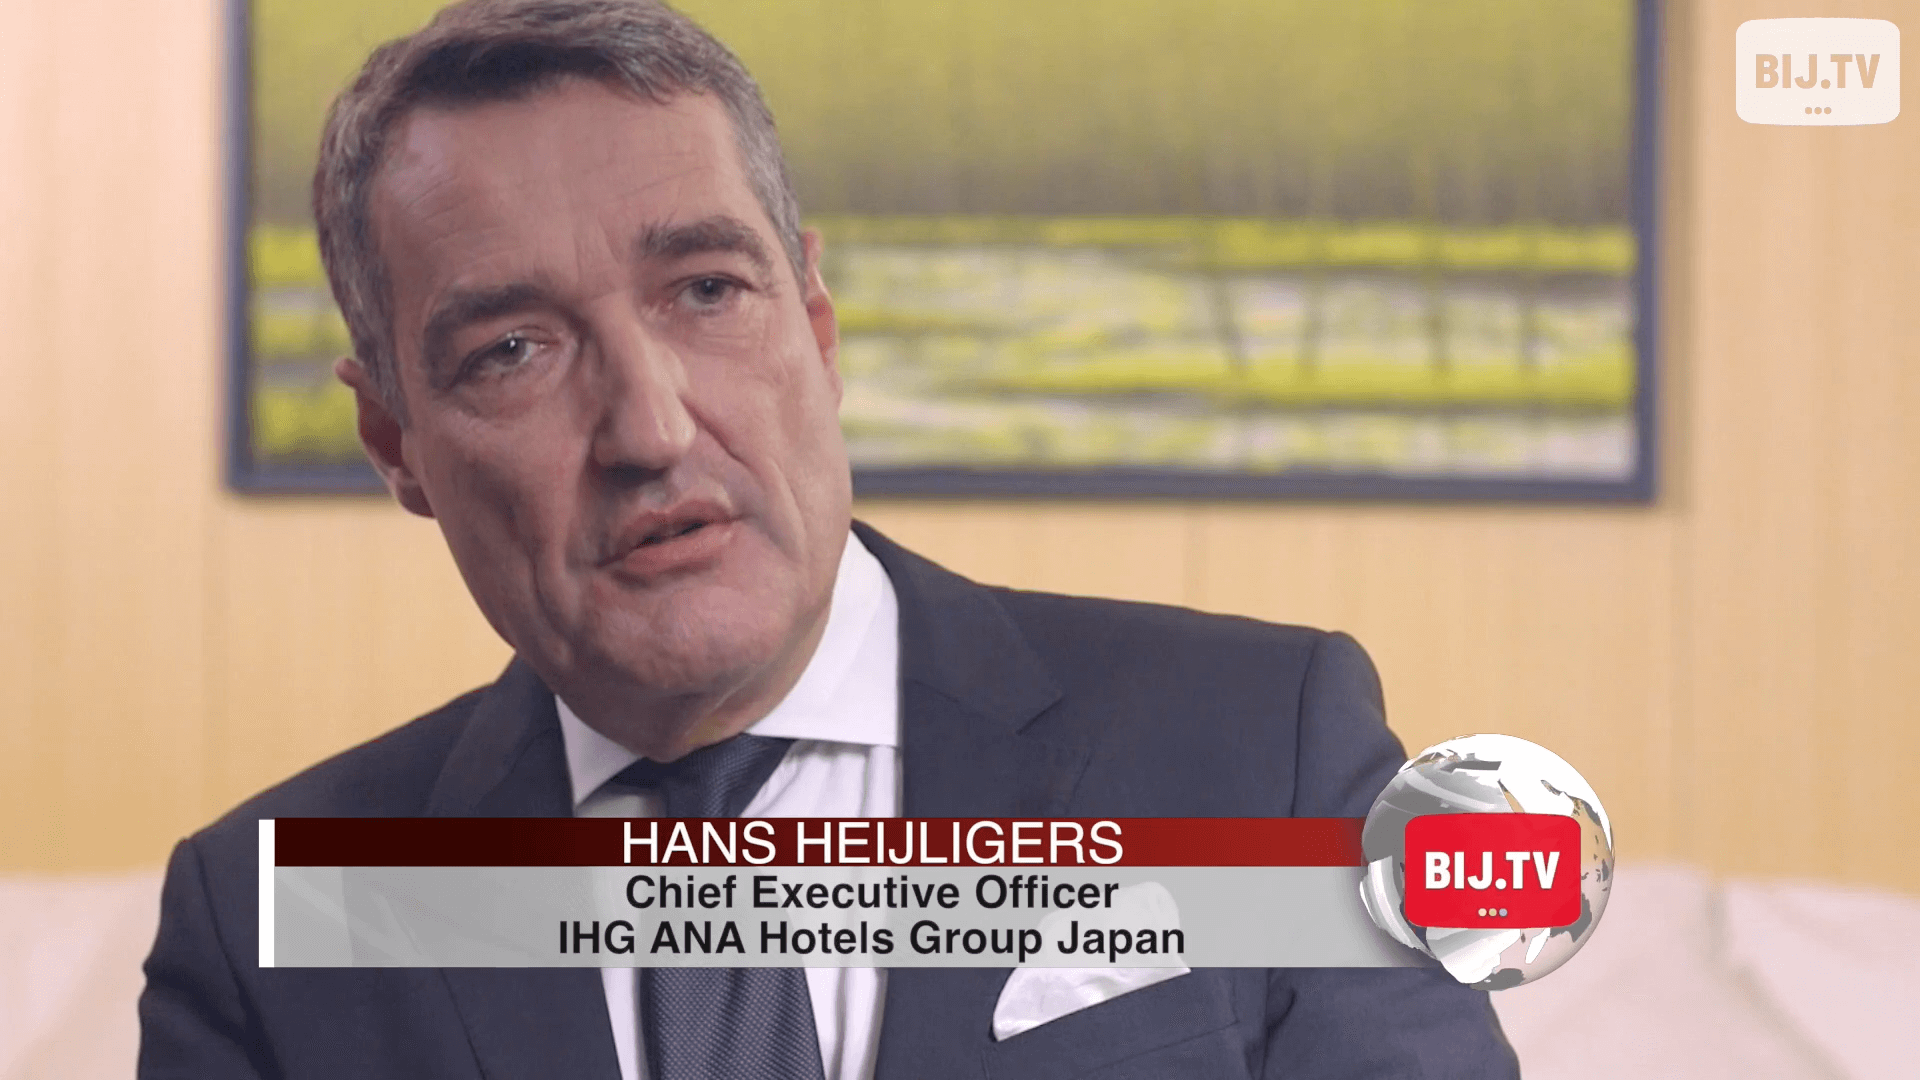 IHG and ANA co-brand for top quality